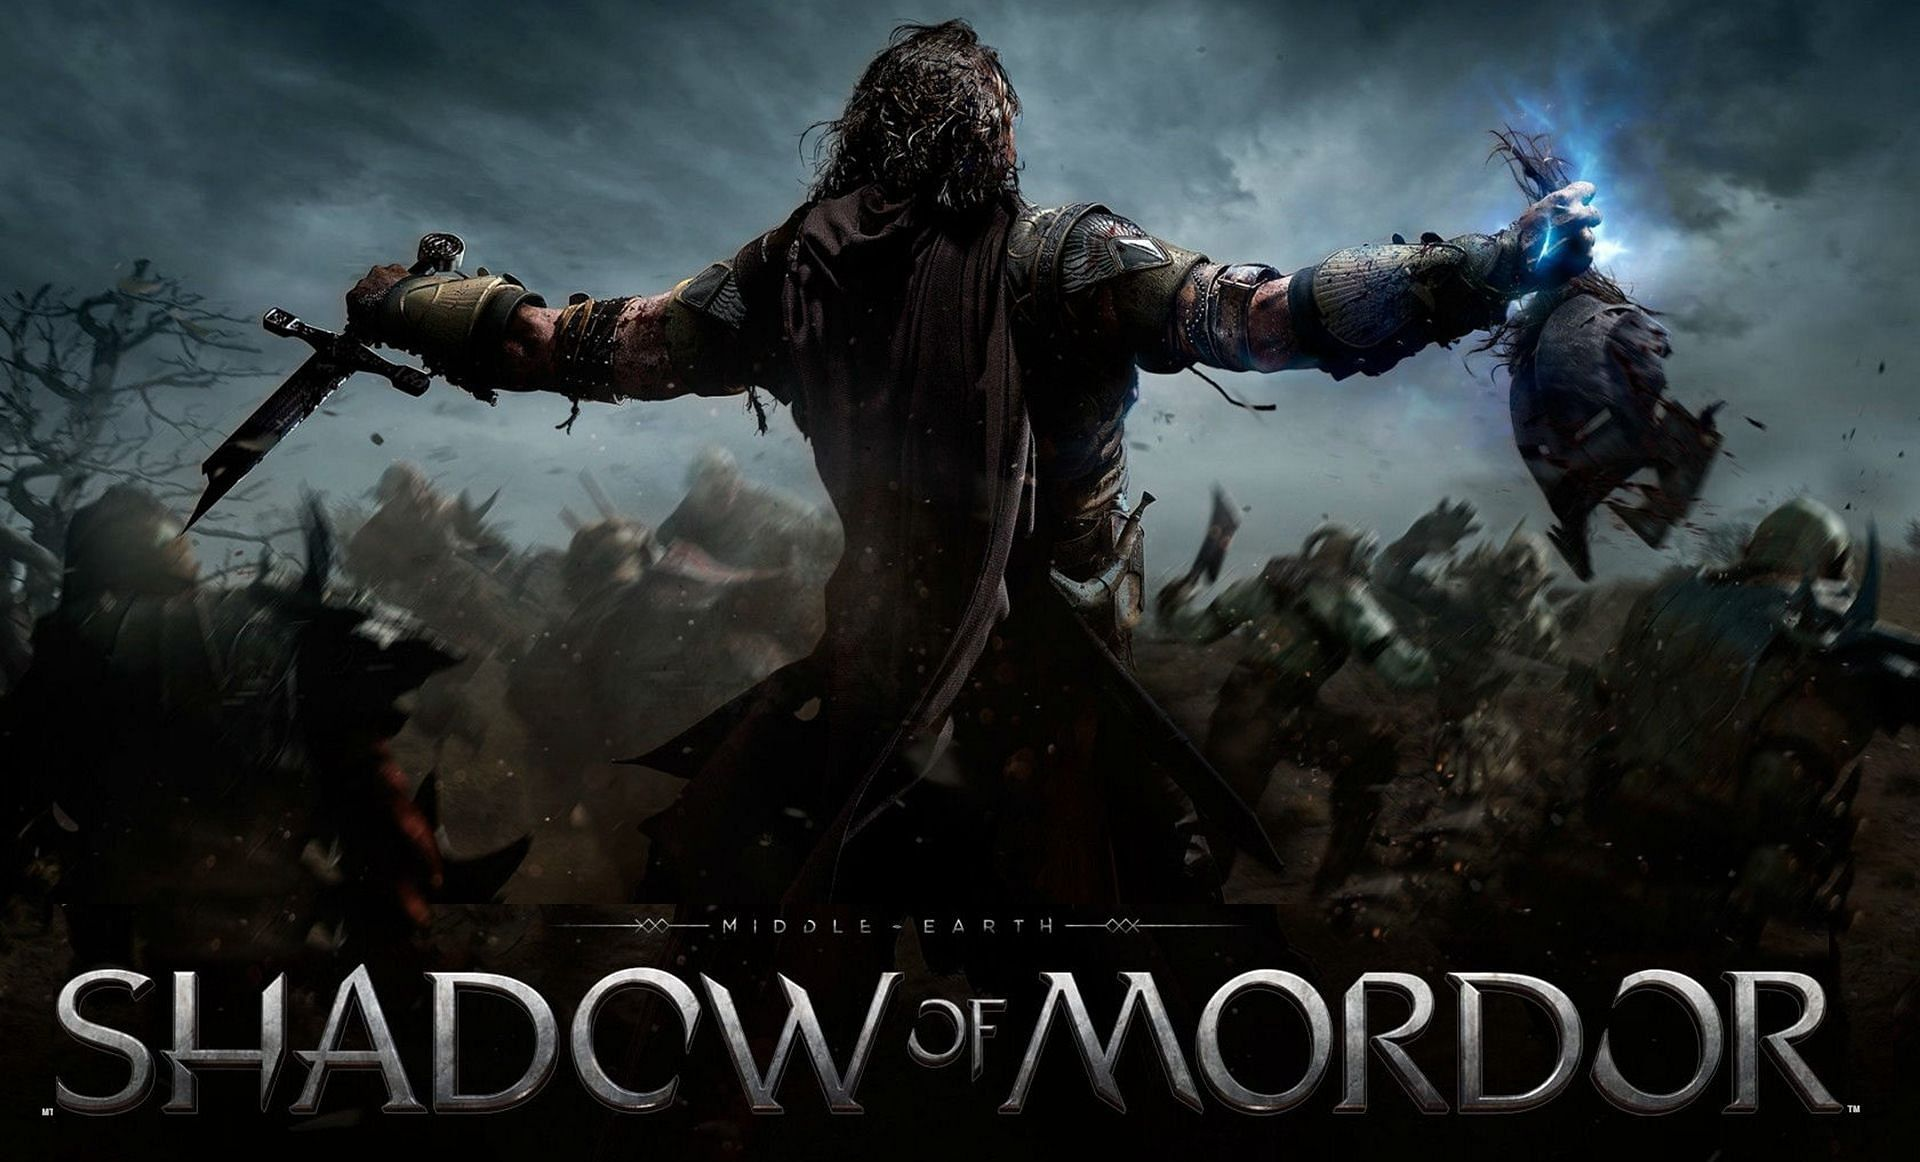 Middle-earth: Shadow of Mordor's release date moved up